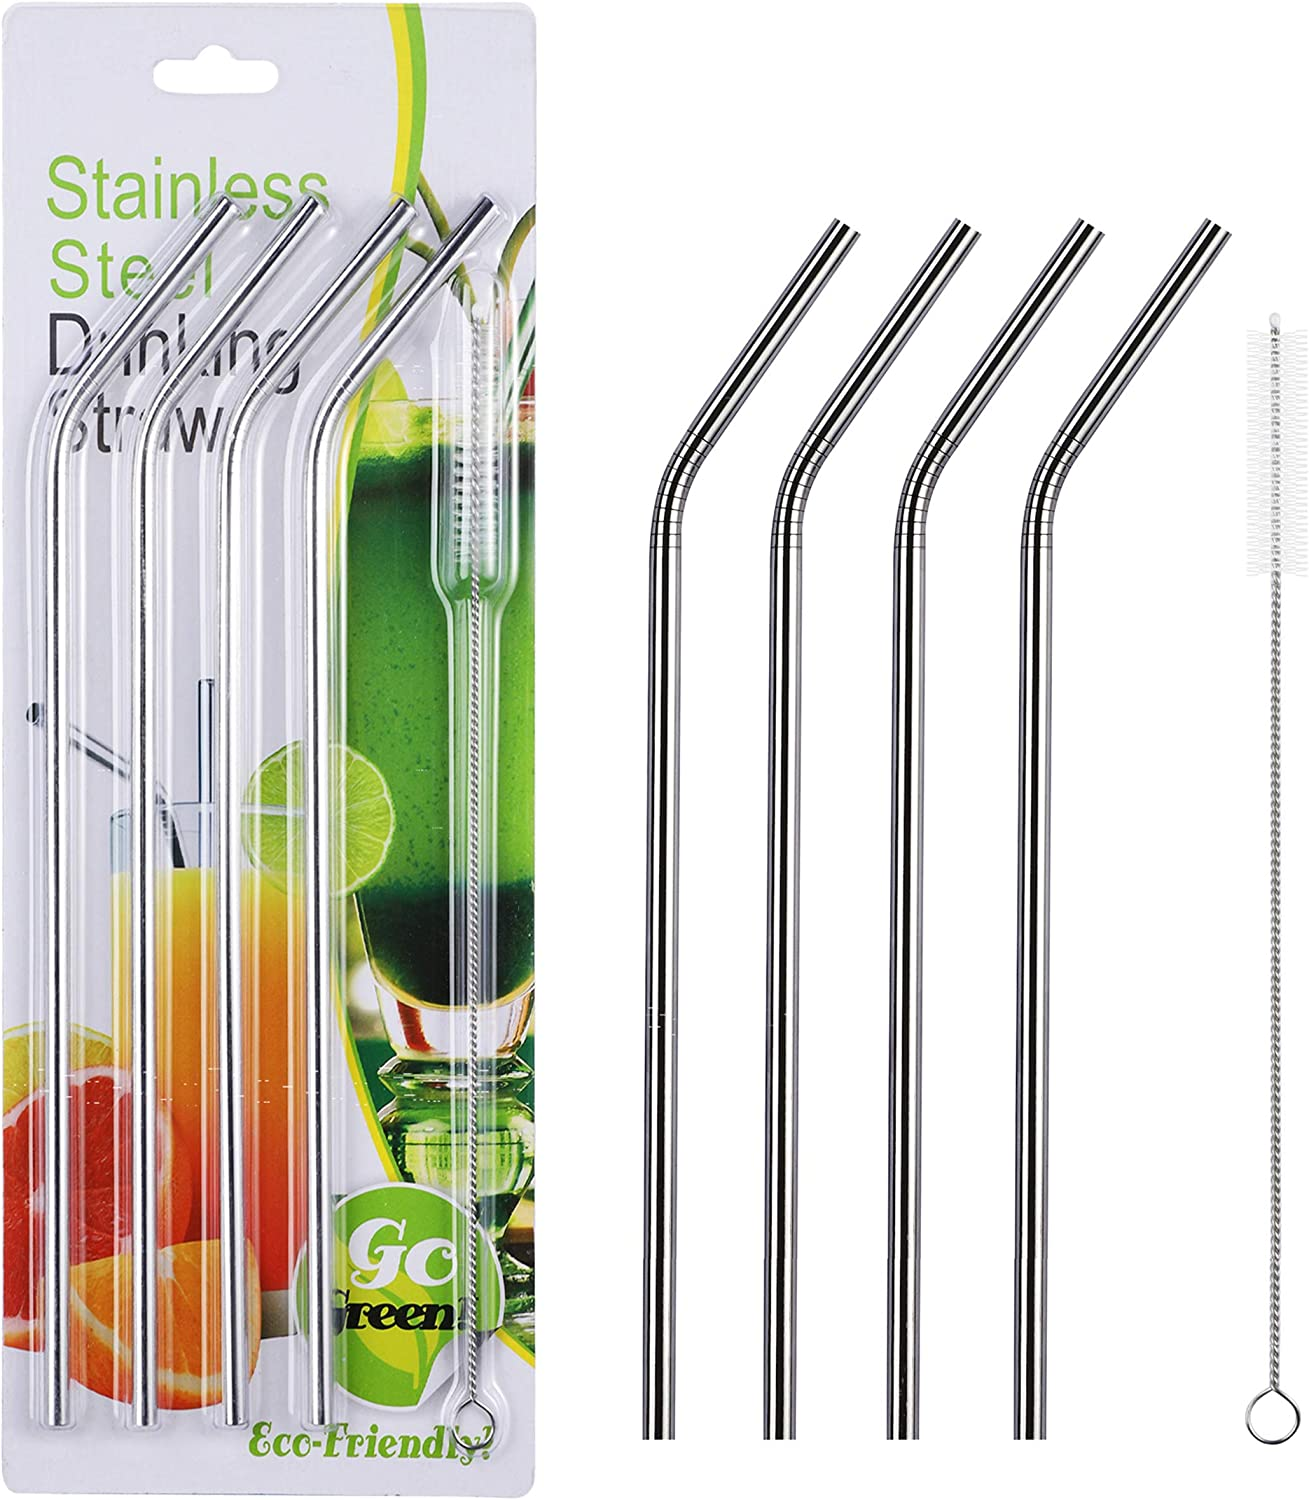 NAHAO Set of 9 Reusable Replacement Metal Stainless Steel Straws With 2 Cleaning Bristle Brushes for 30oz Yeti Ozark Tumbler RTIC